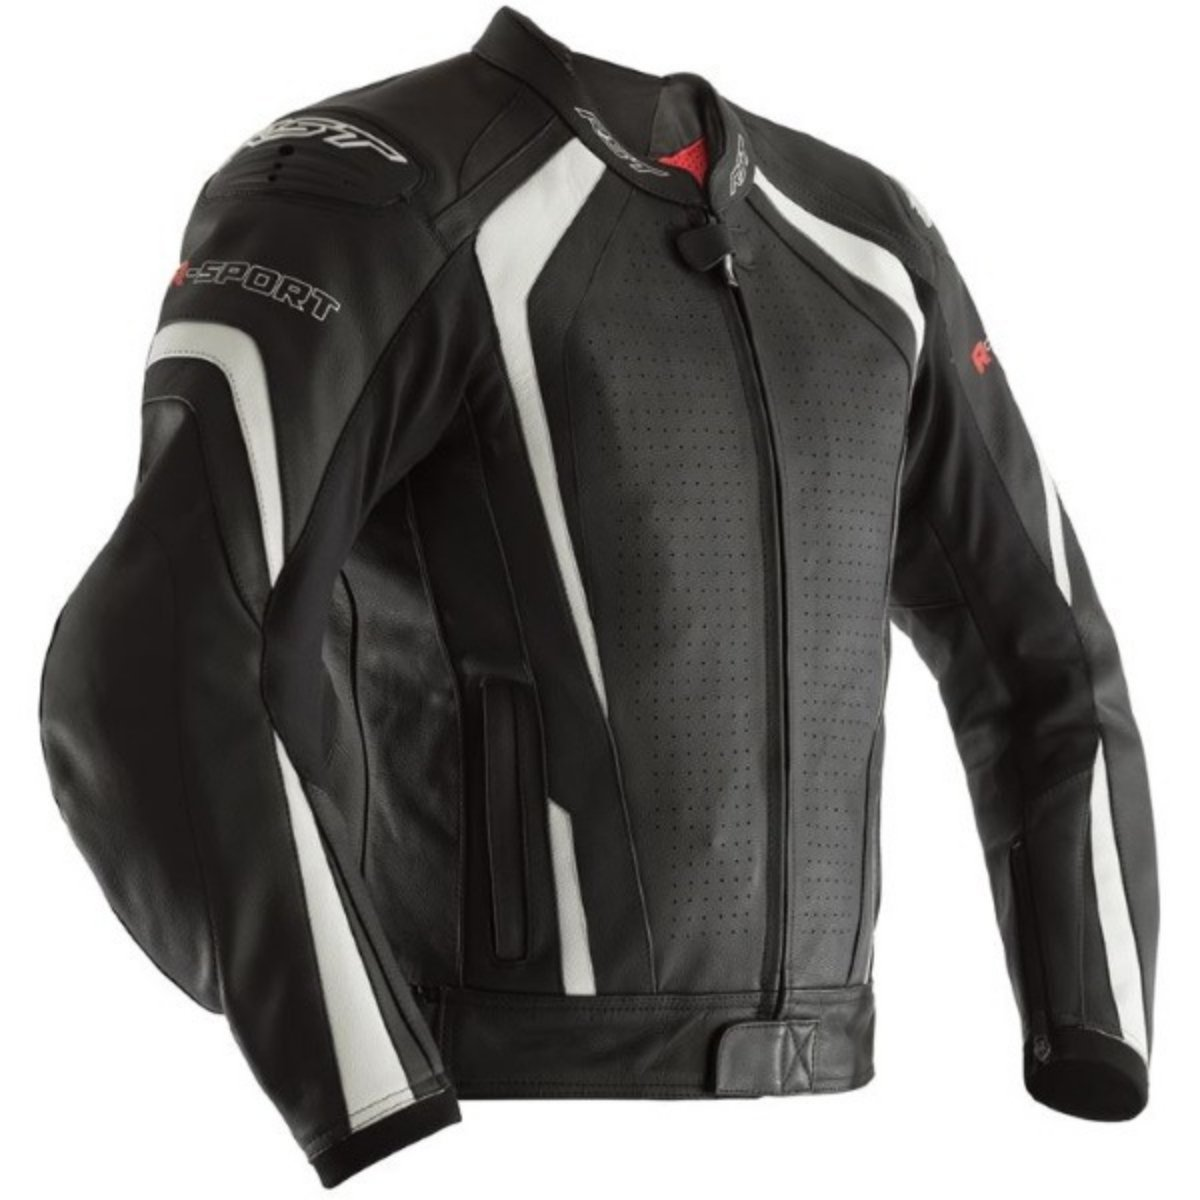 RST R-Sport CE Mens Black/White Leather Motorcycle Jacket